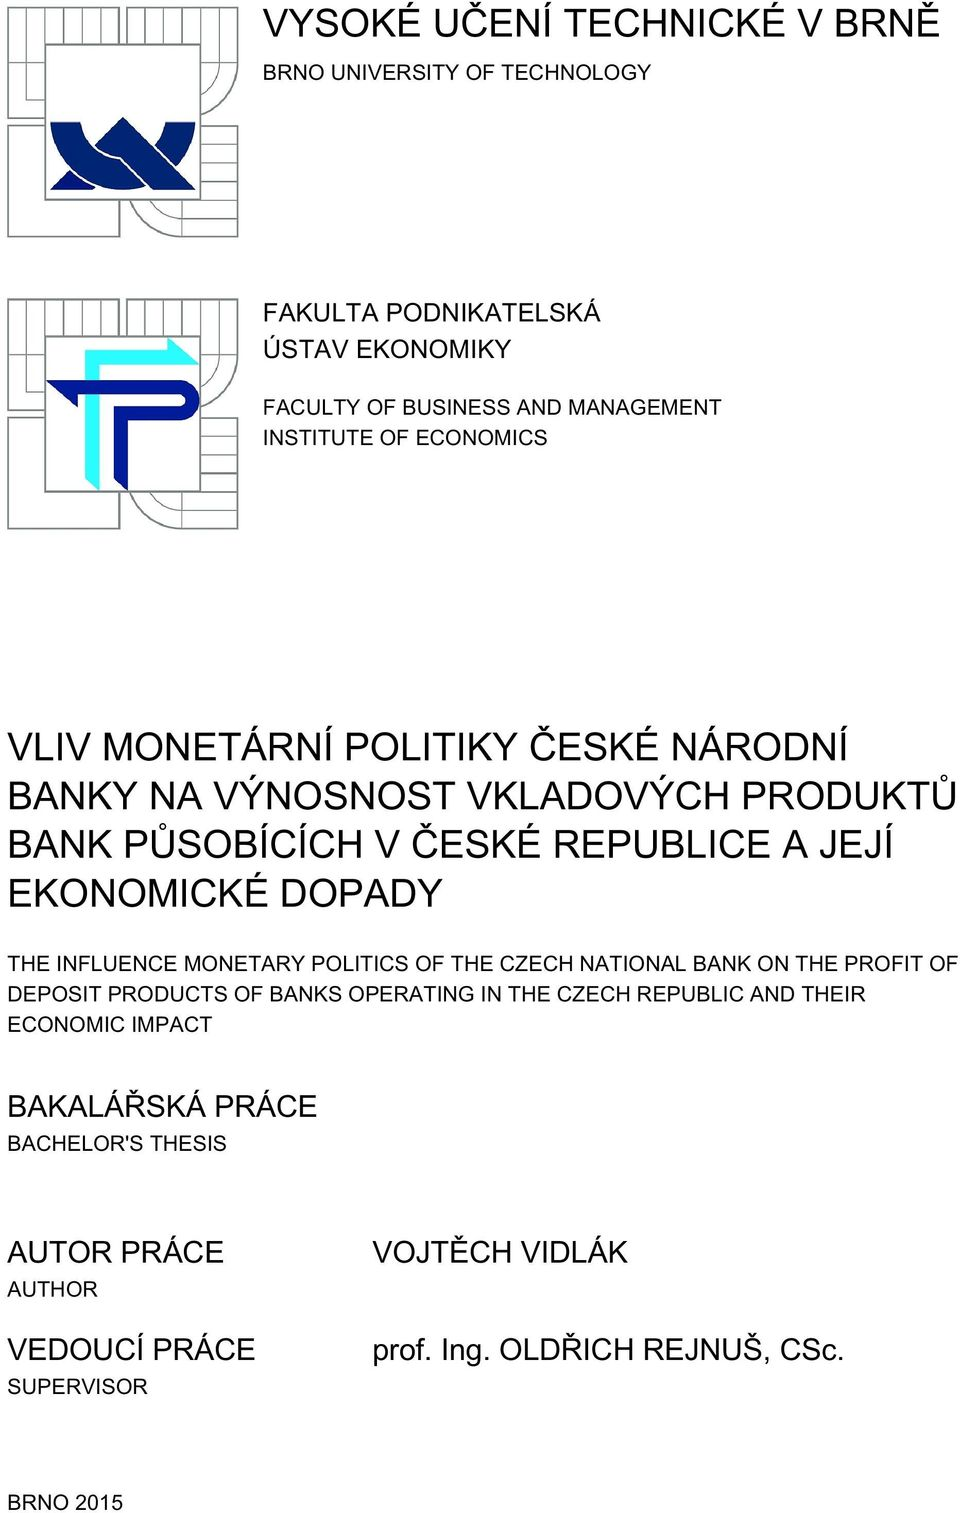 THE INFLUENCE MONETARY POLITICS OF THE CZECH NATIONAL BANK ON THE PROFIT OF DEPOSIT PRODUCTS OF BANKS OPERATING IN THE CZECH REPUBLIC AND THEIR